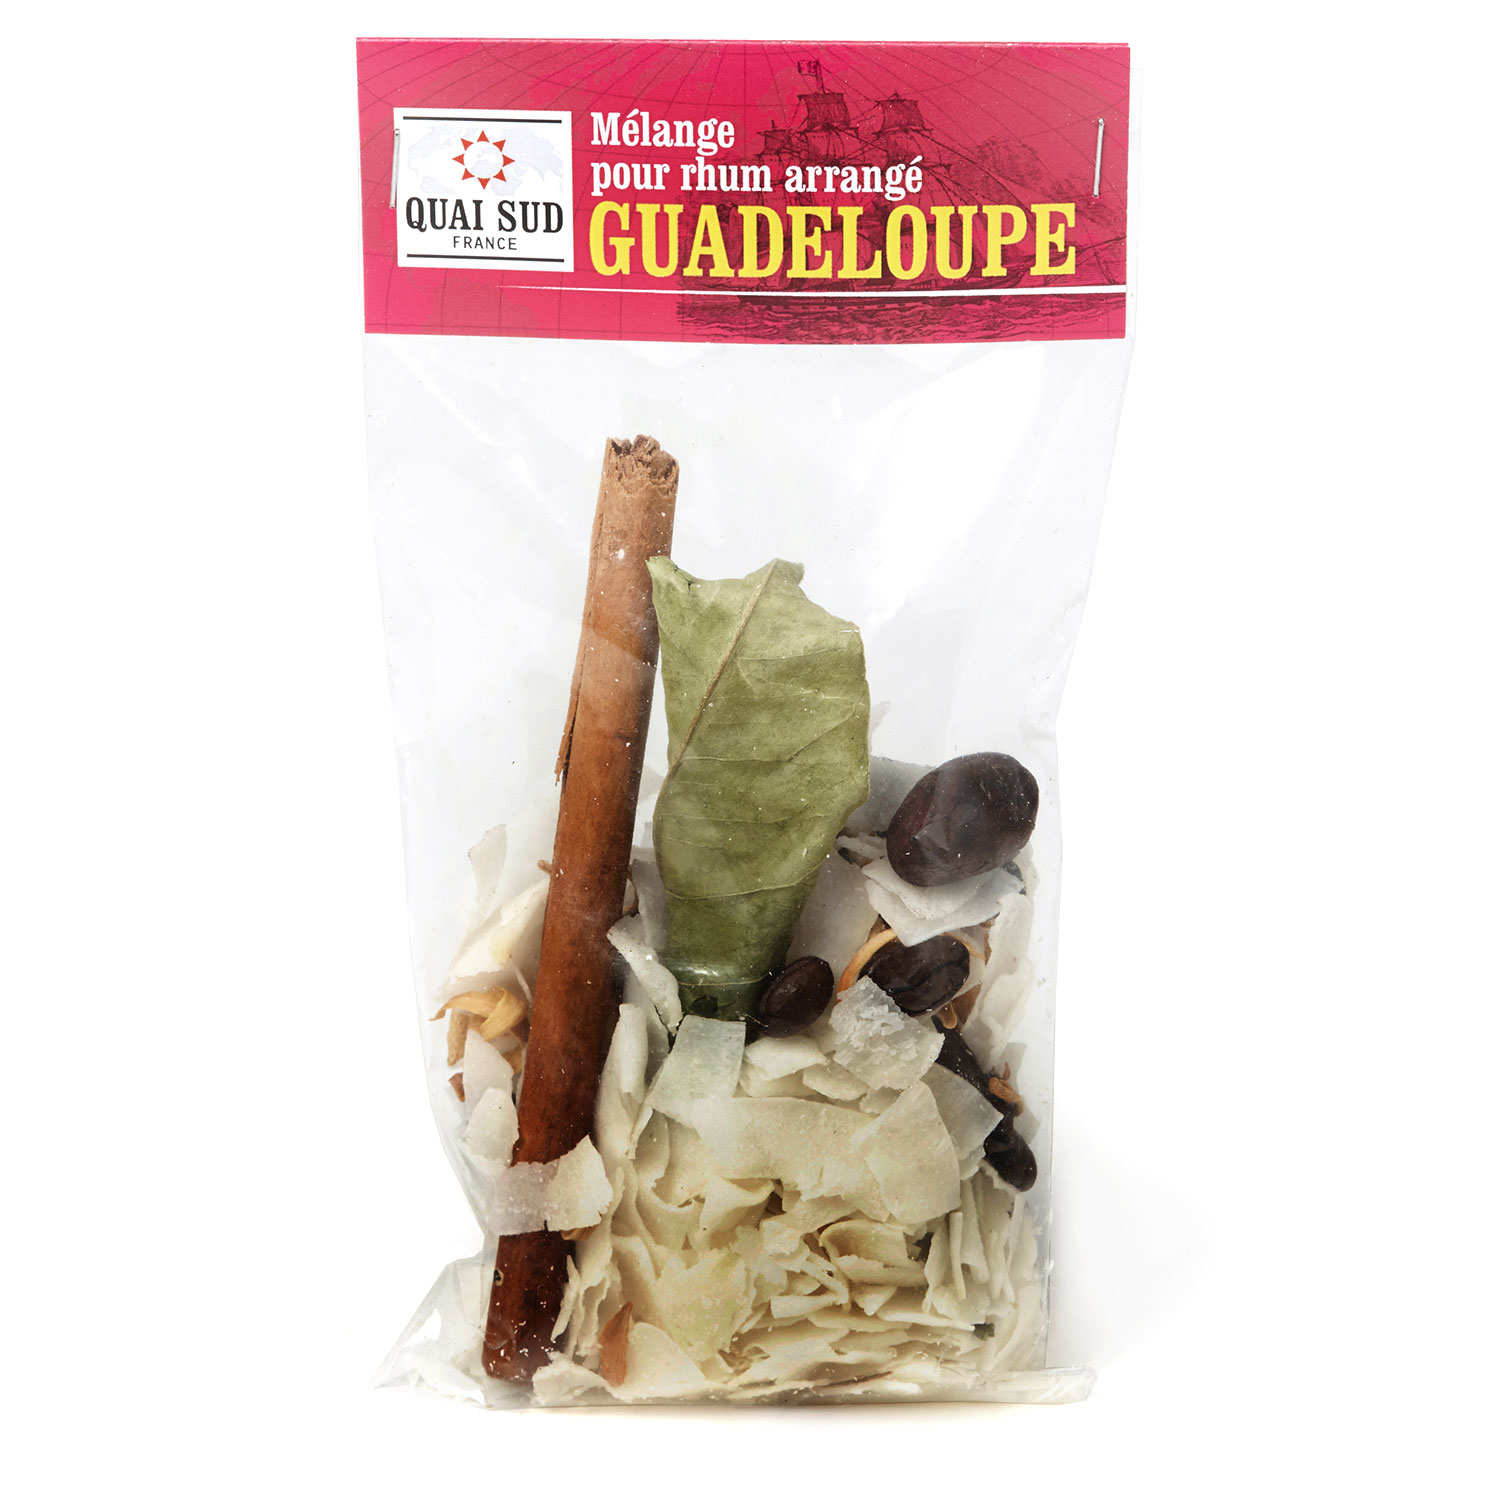 Guadeloupe mix for customized rum